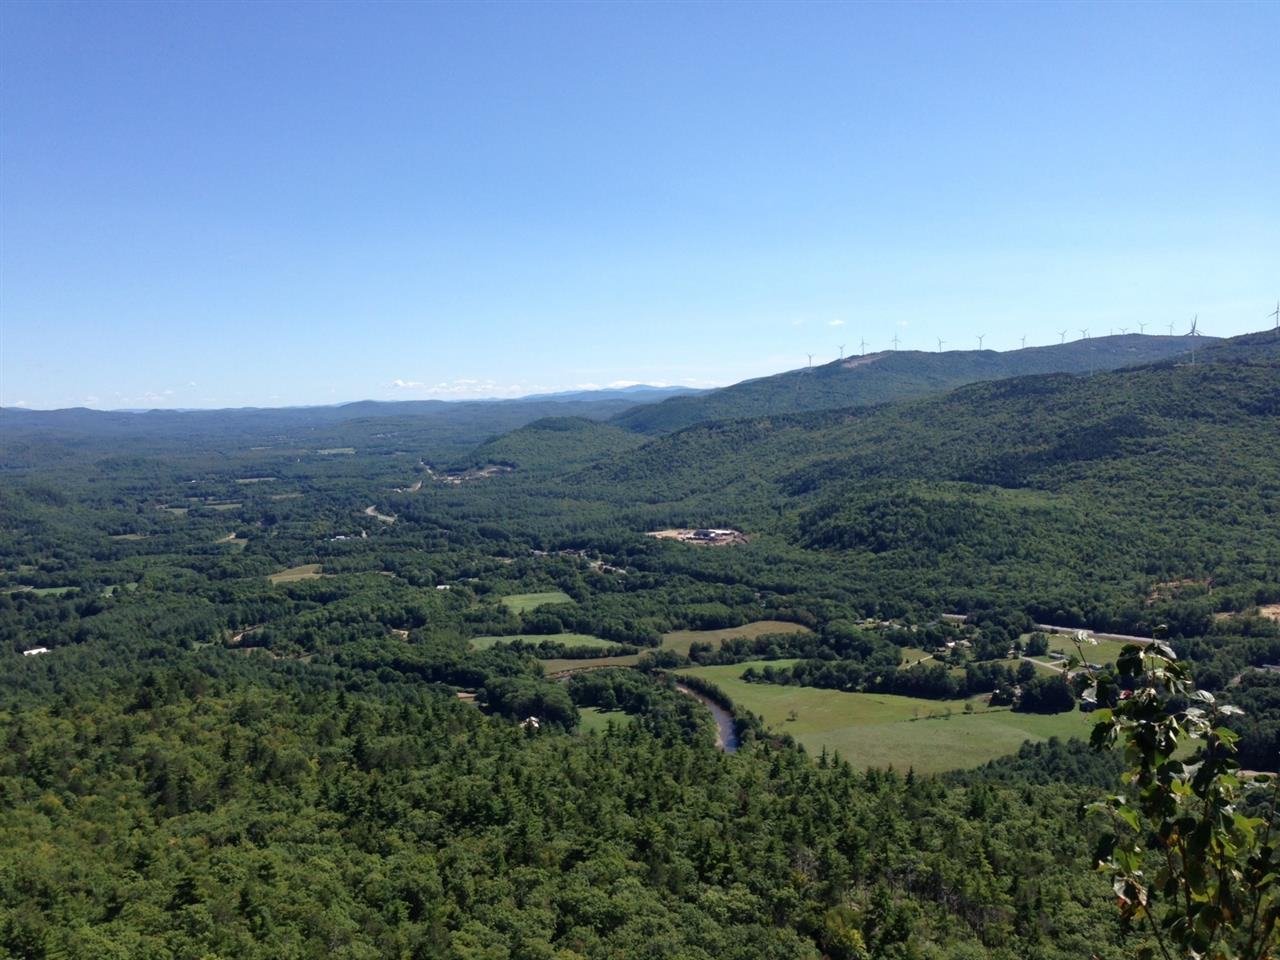 Rumney, NH. View from the top of Rattlesnake Mountain. A great place to take a hike!